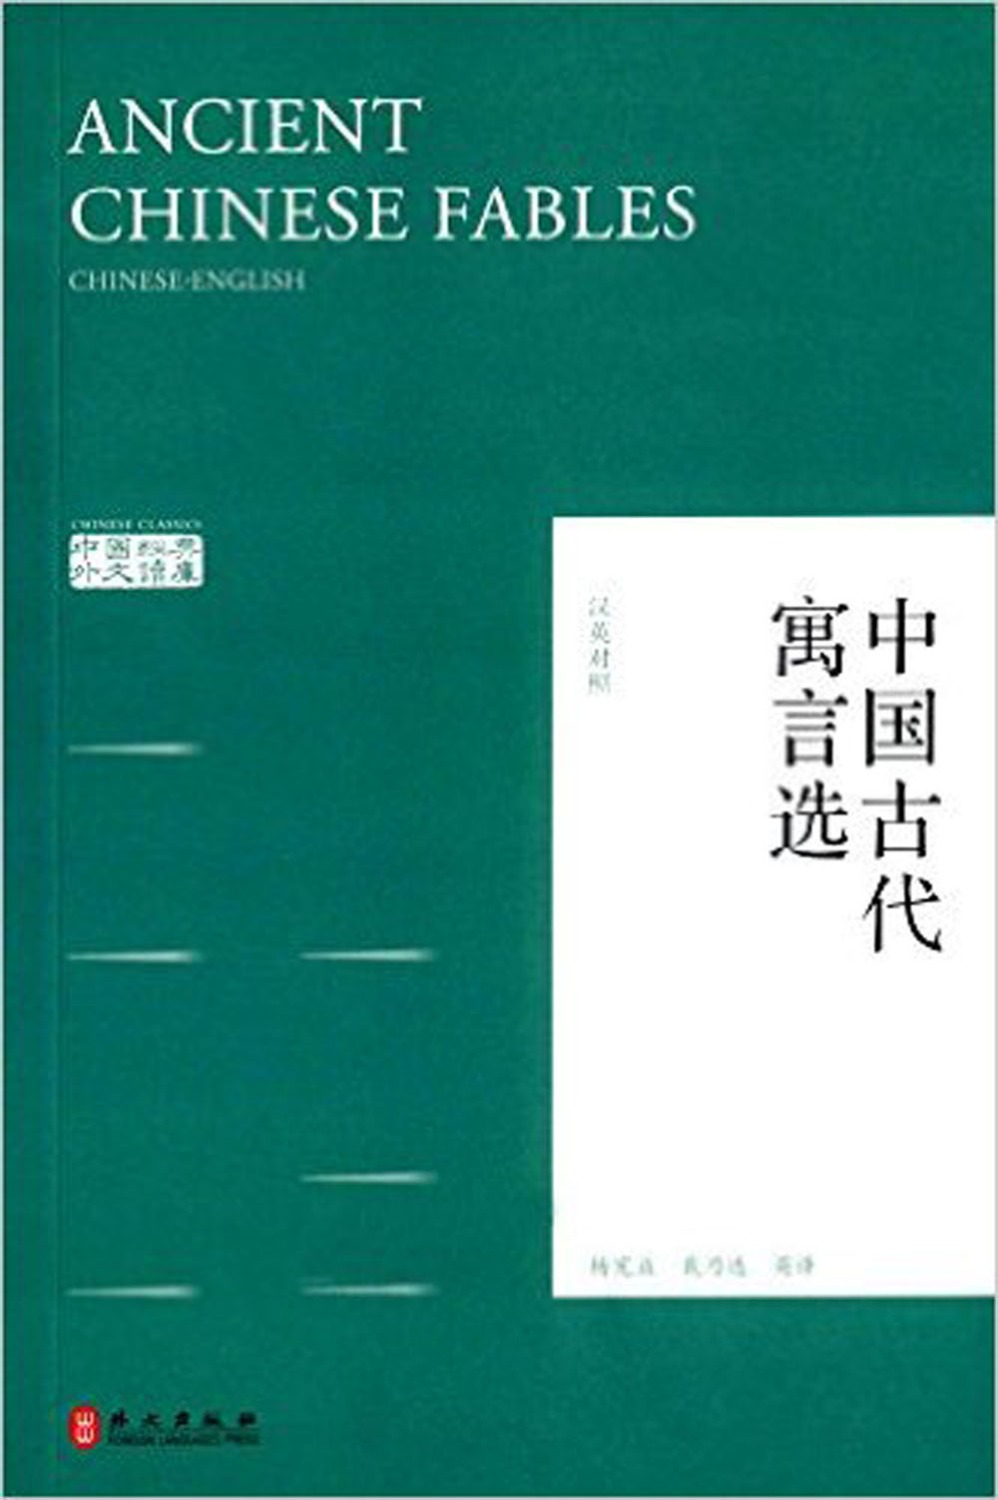 Chinese classics: Ancient Chinese Fables(Chinese-English)- bilingual 4pcs set strange tales from make do studio bilingual chinese